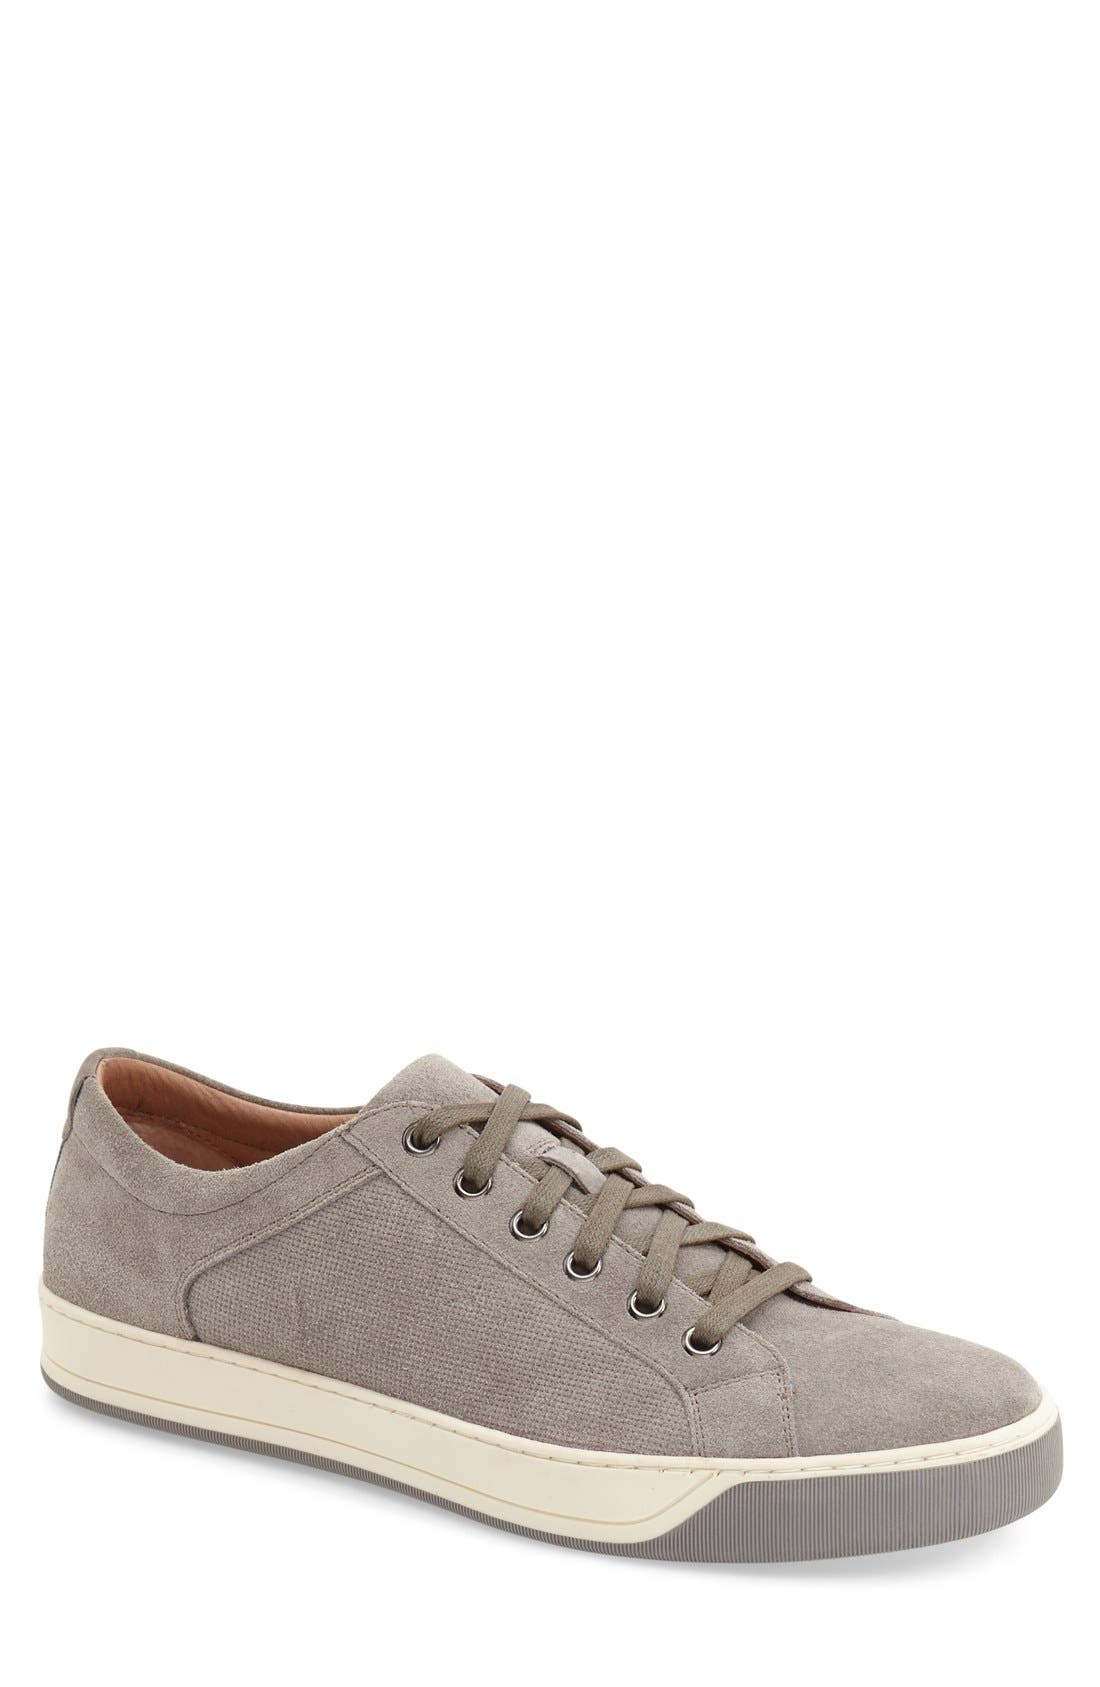 J&M 1850 Allister Sneaker (Men)